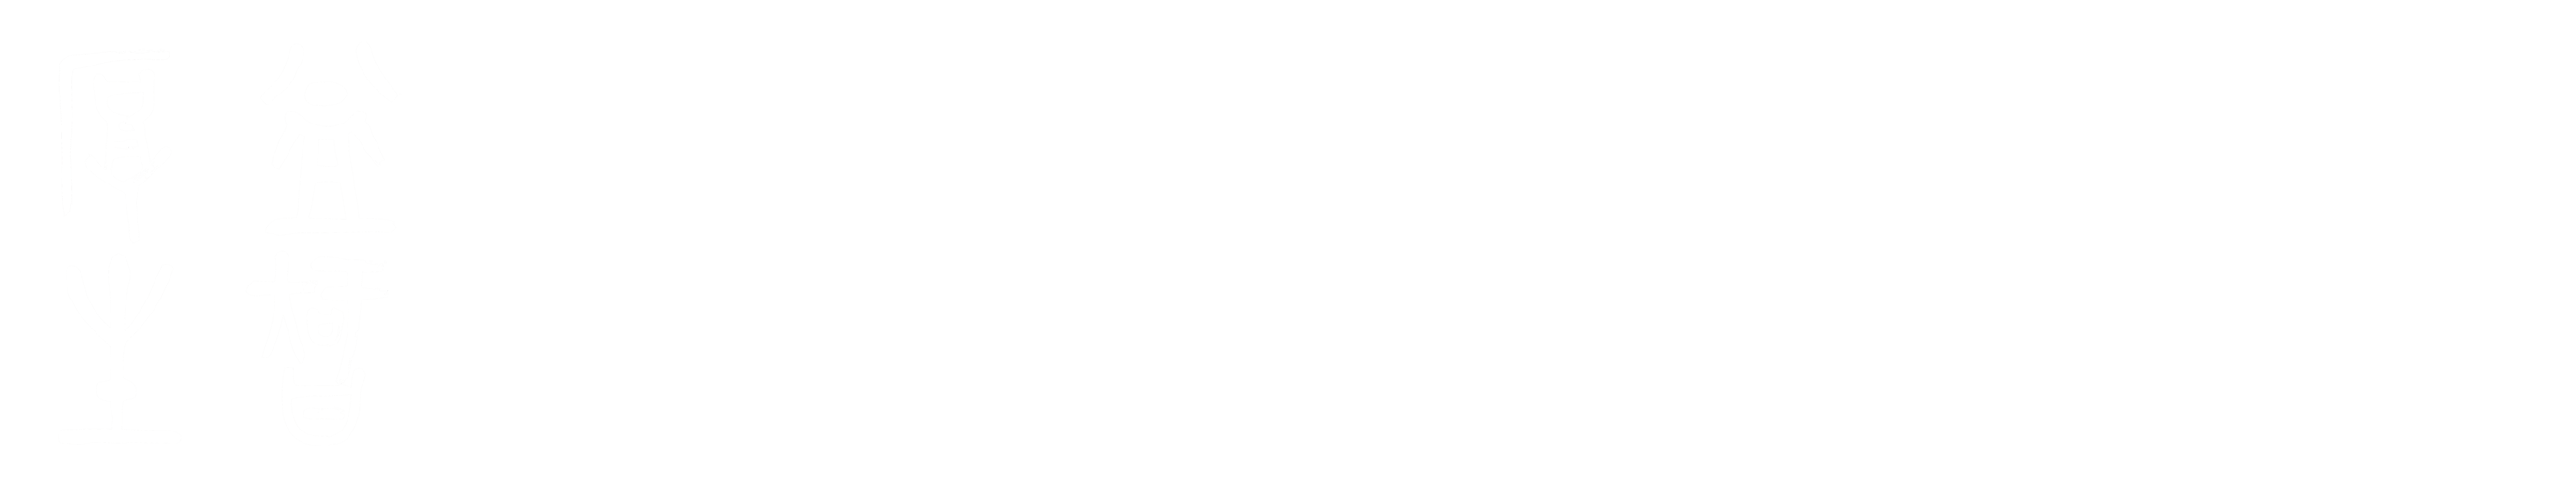 The Center for East Asian Studies website logo